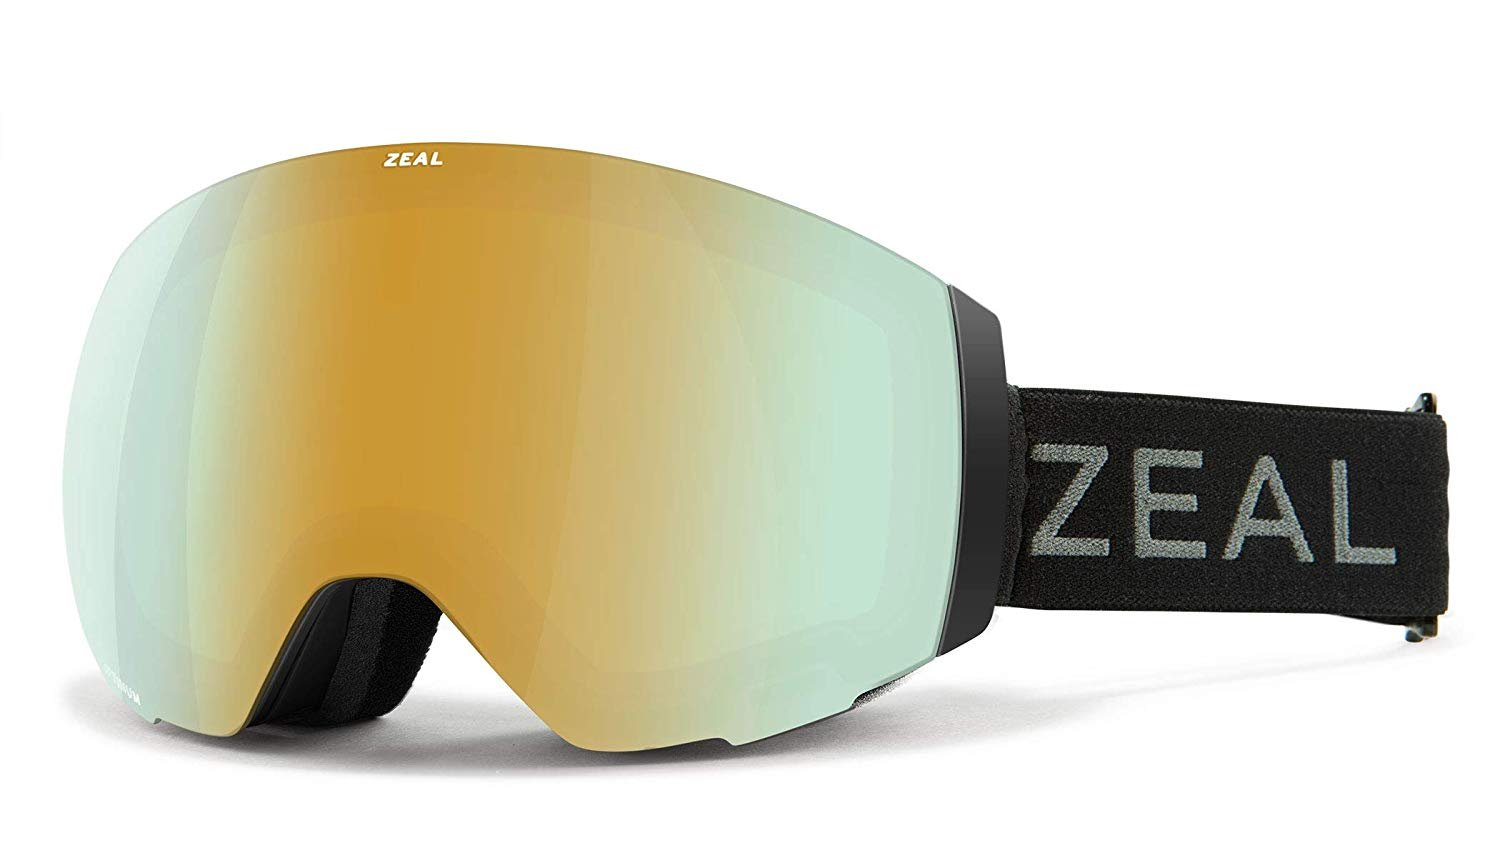 ZEAL PORTAL DARK NIGHT / ALCHEMY MIRROR GOGGLES